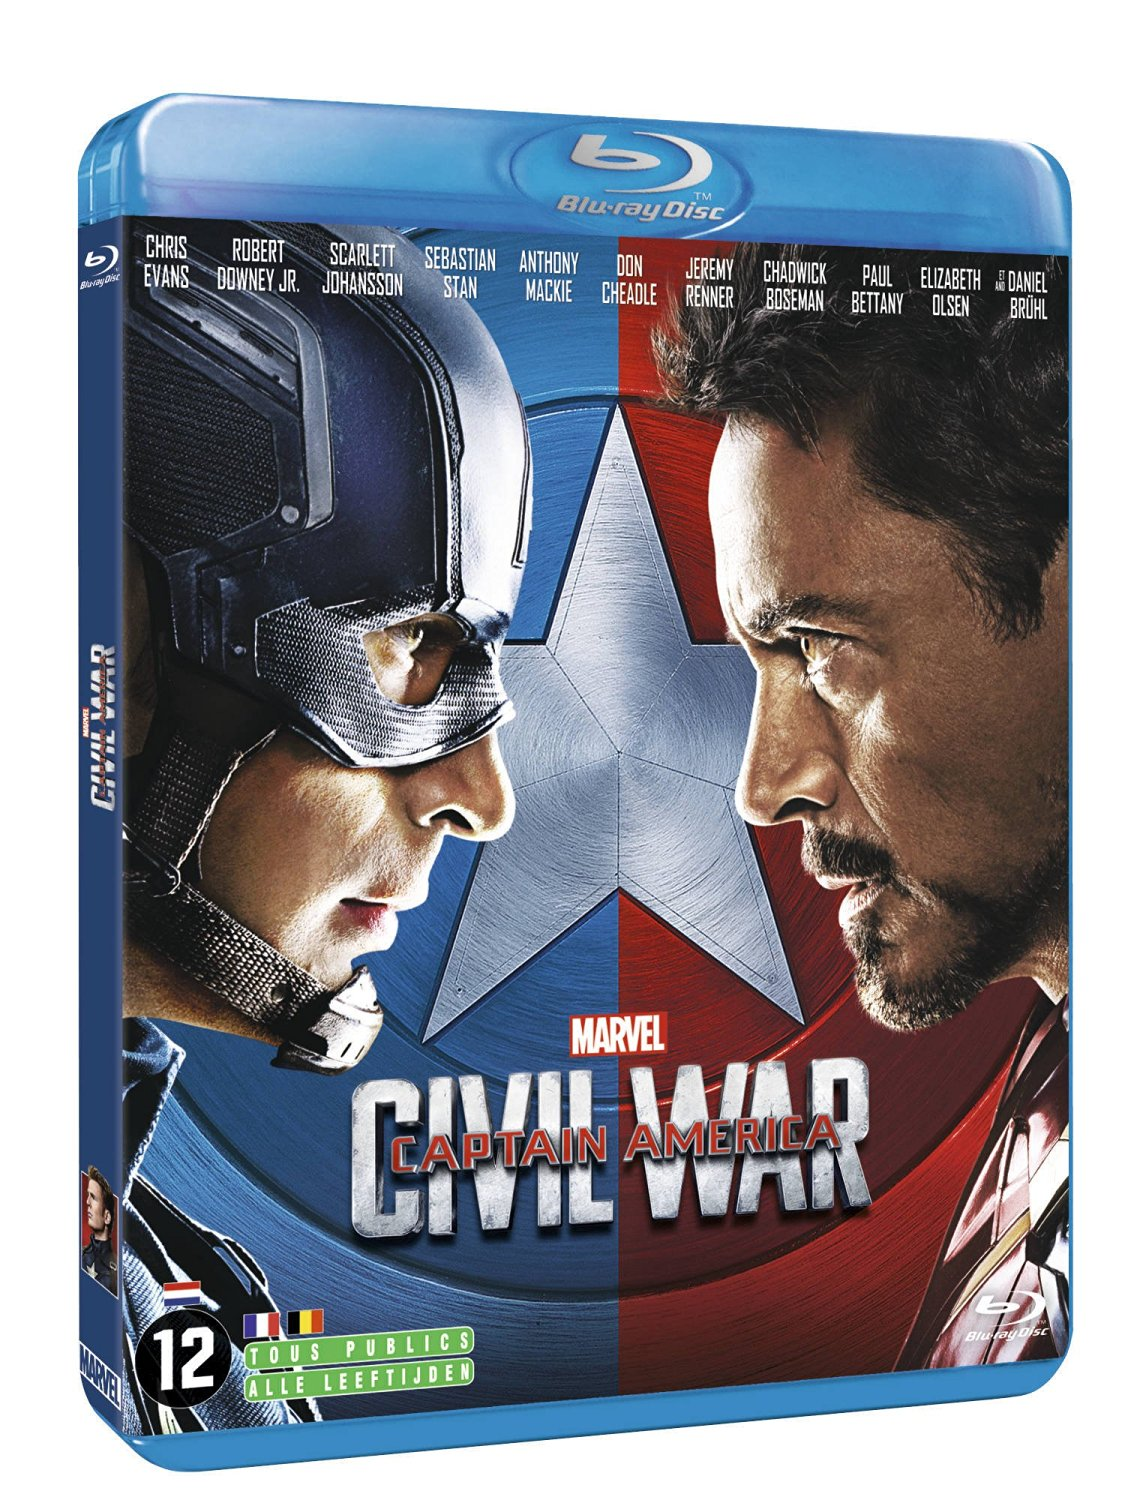 Blu-ray Captain America : Civil War, Blu-ray pas cher Amazon